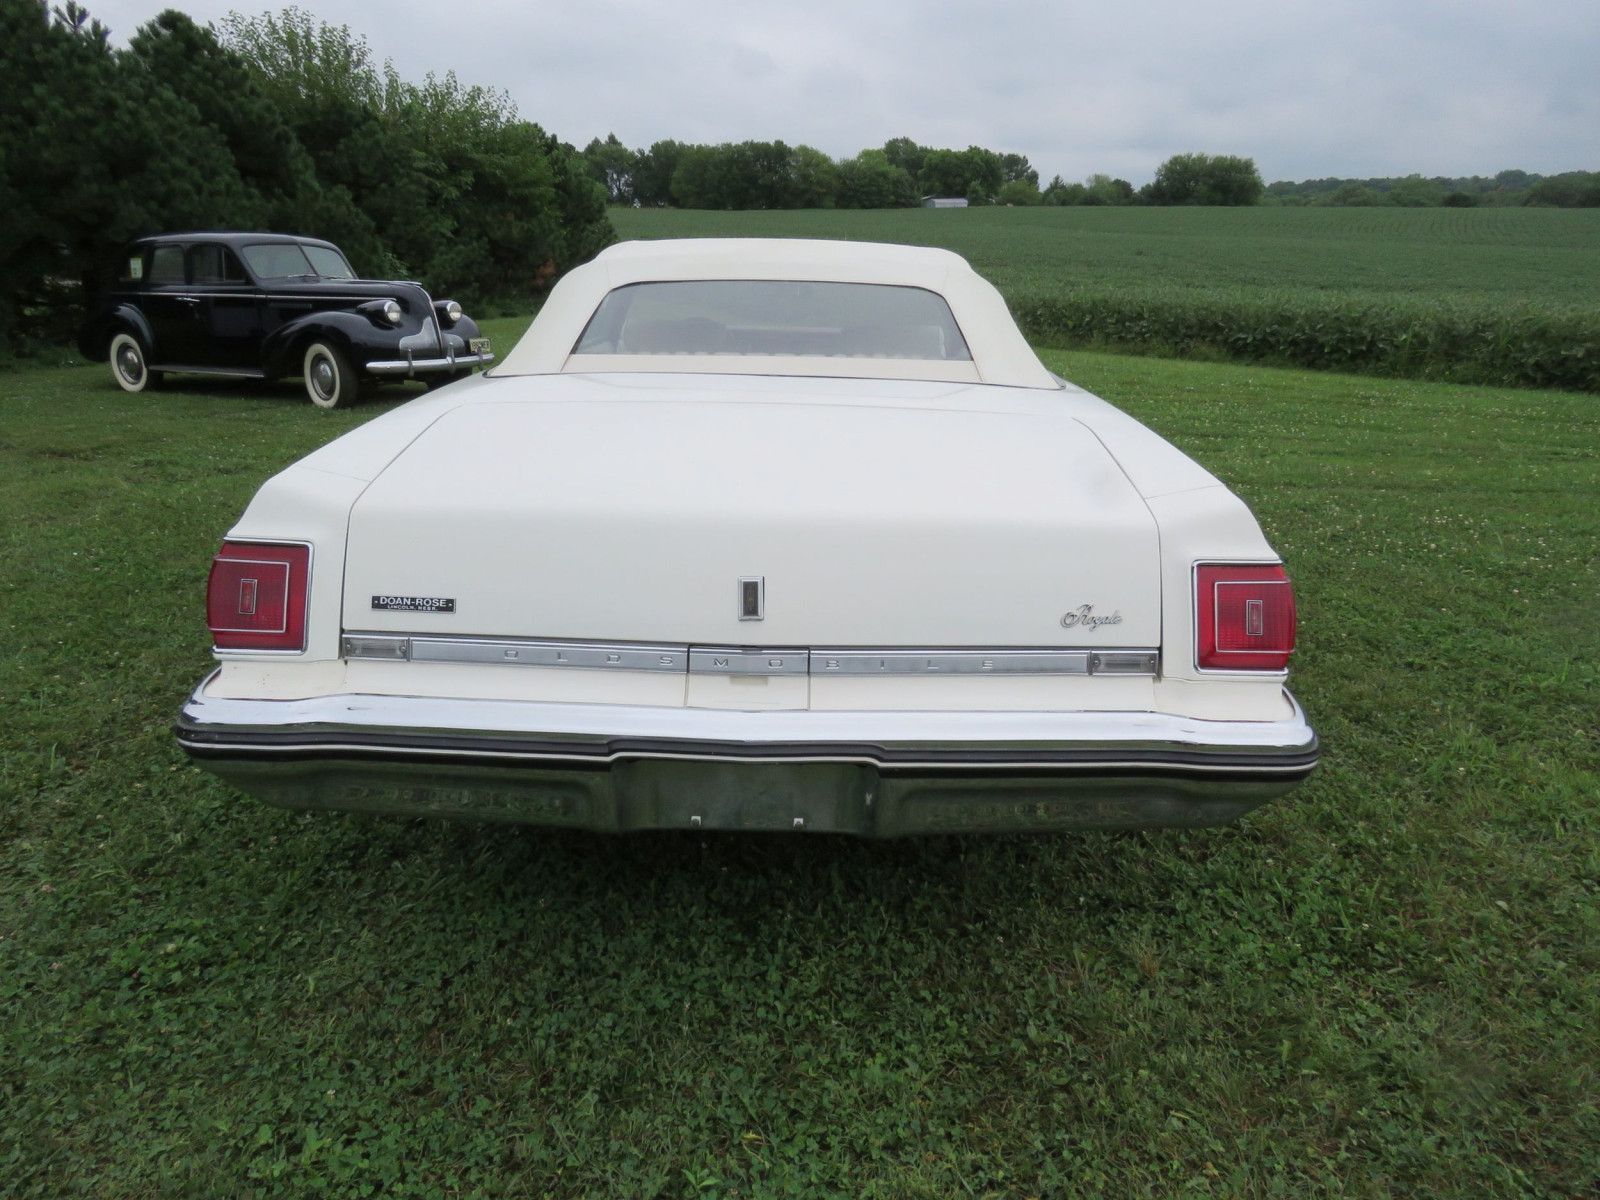 1975 Oldsmobile Delta 88 Convertible - Image 5